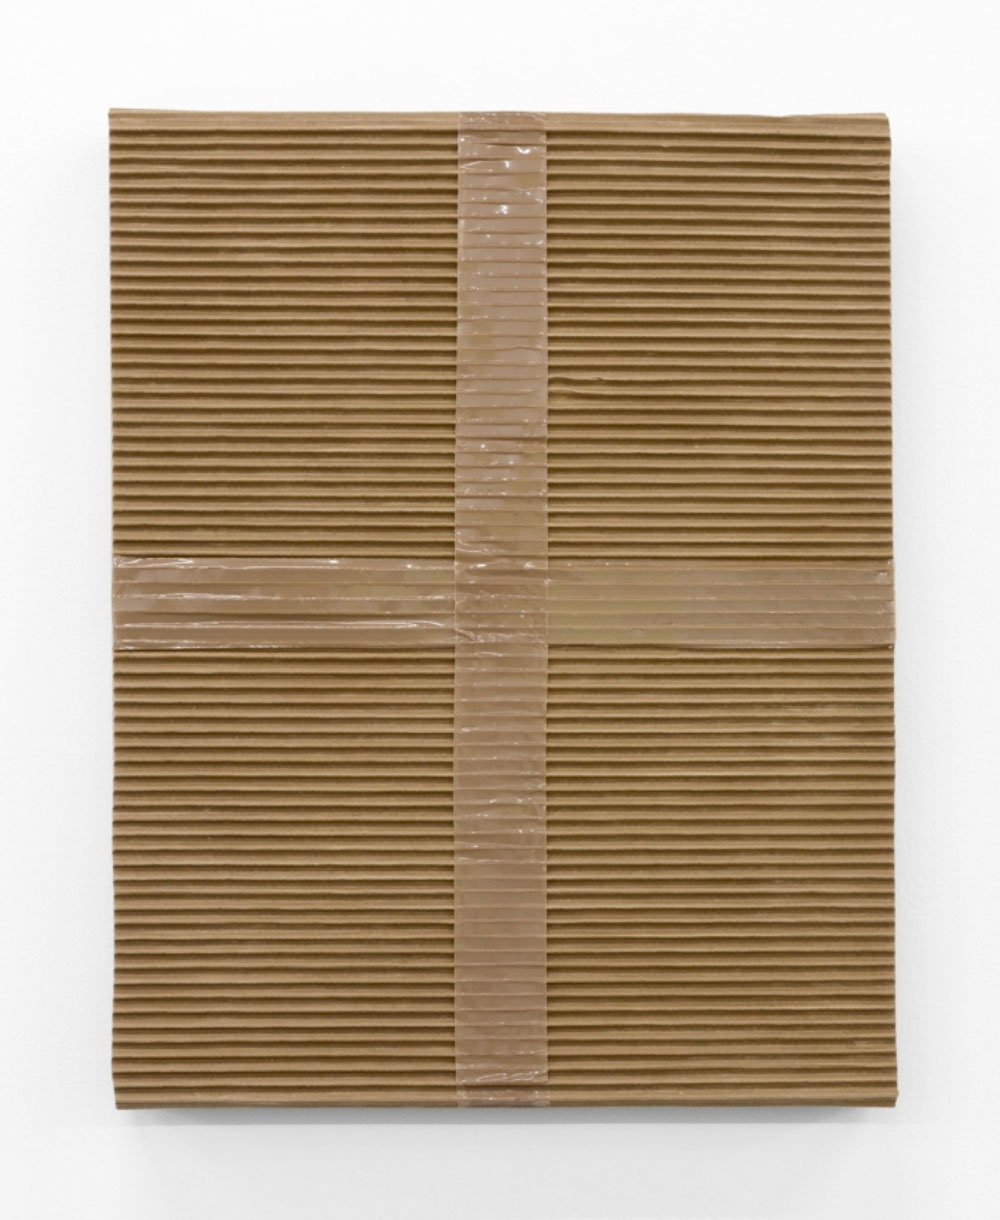 """Monochrome with Corrugated Cardboard with Tan Packing Tape , 2017-18 Acrylique sur toile de lin 20 x 16""""."""